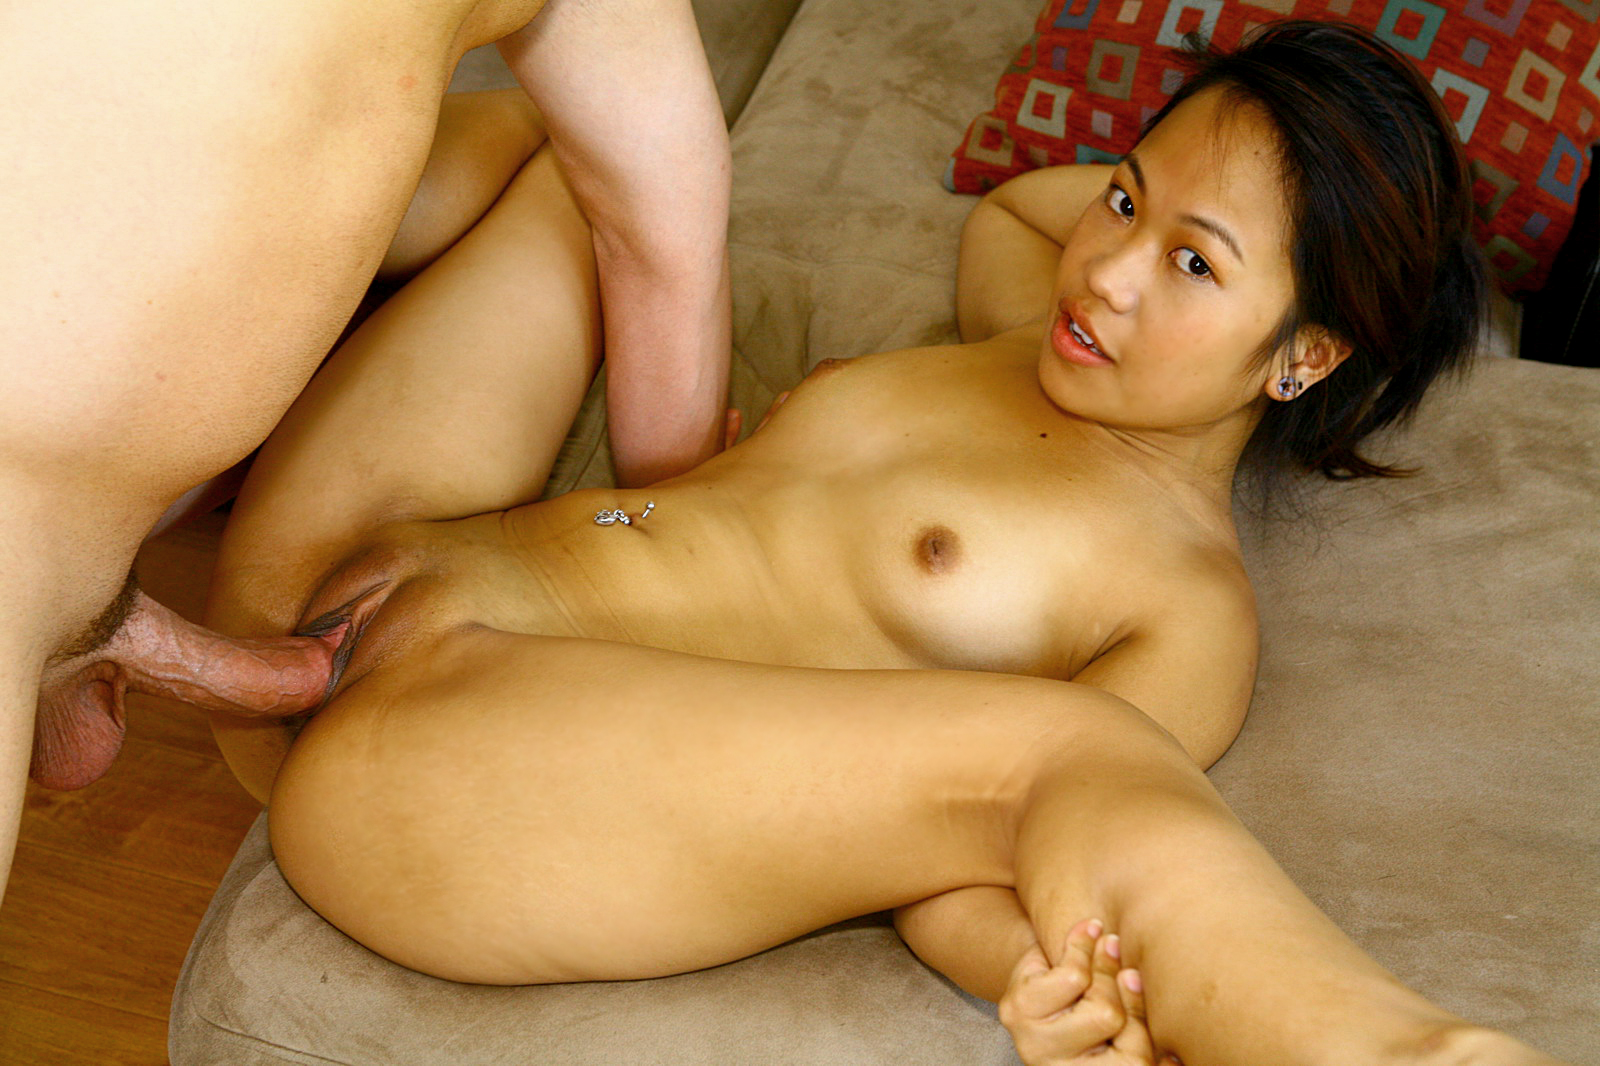 tumblr amateur asian girls nackt